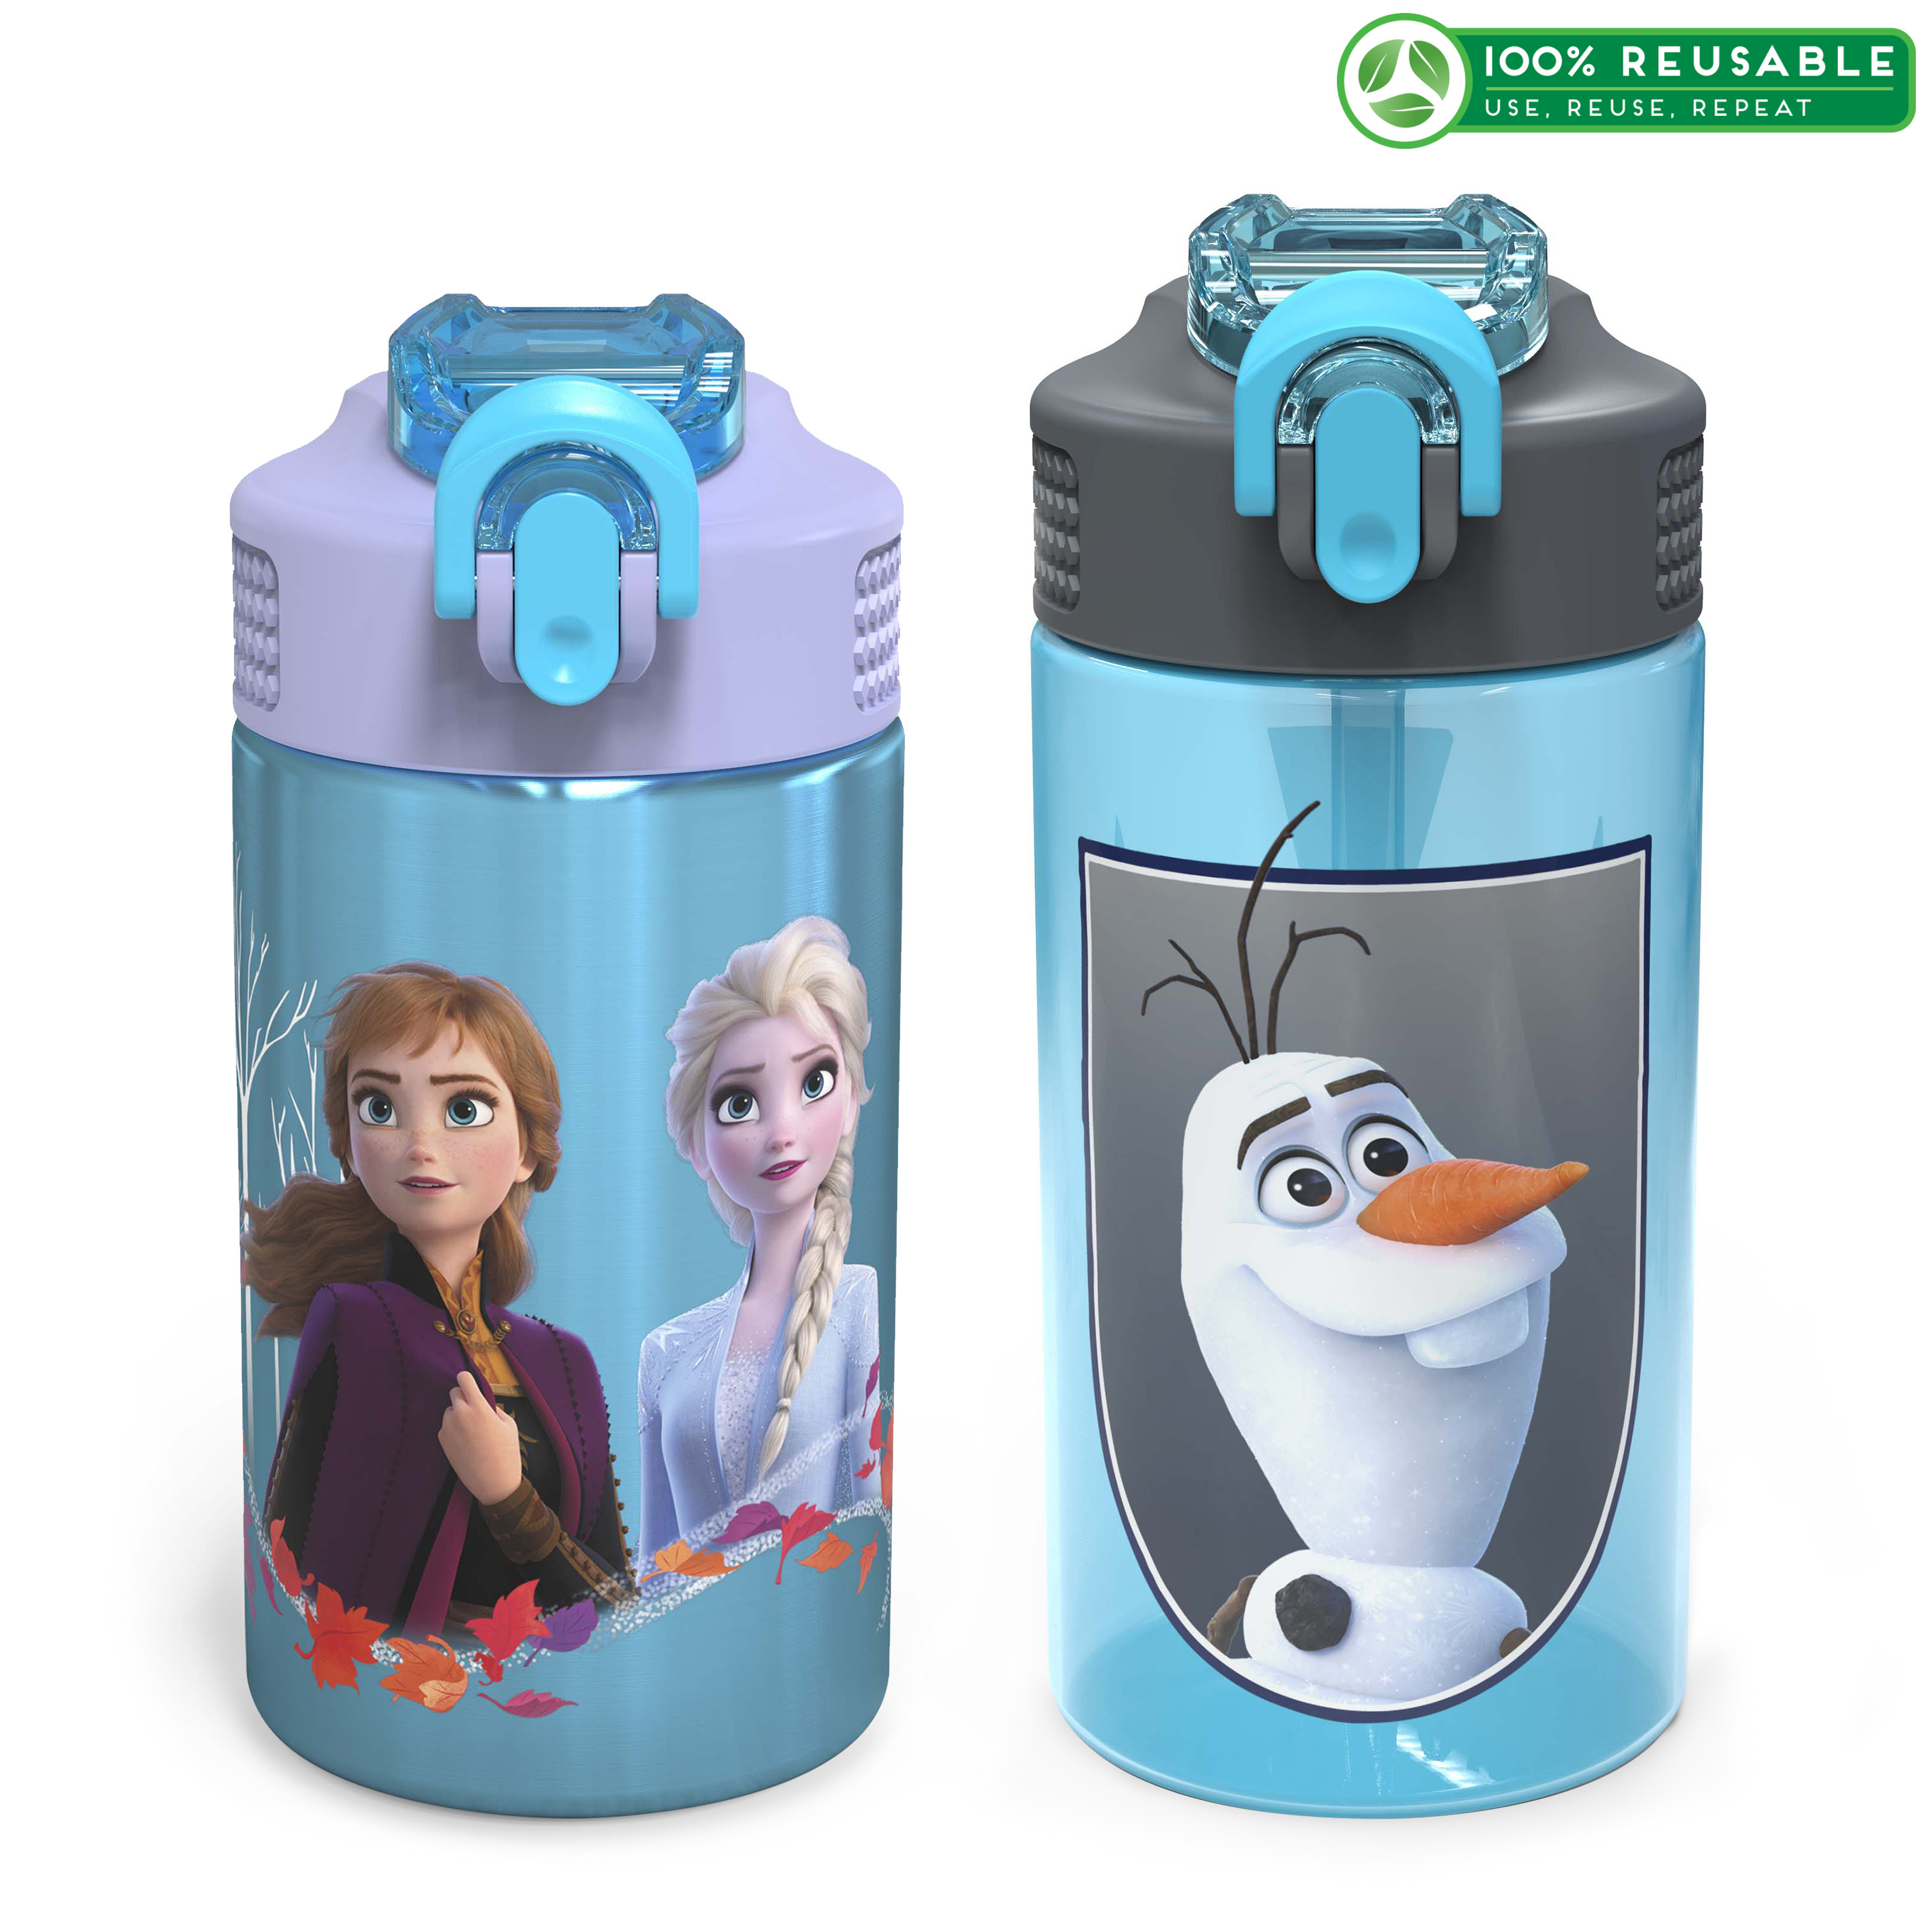 Disney Frozen 2 Movie Water Bottle, Anna , Elsa and Olaf, 2-piece set slideshow image 1